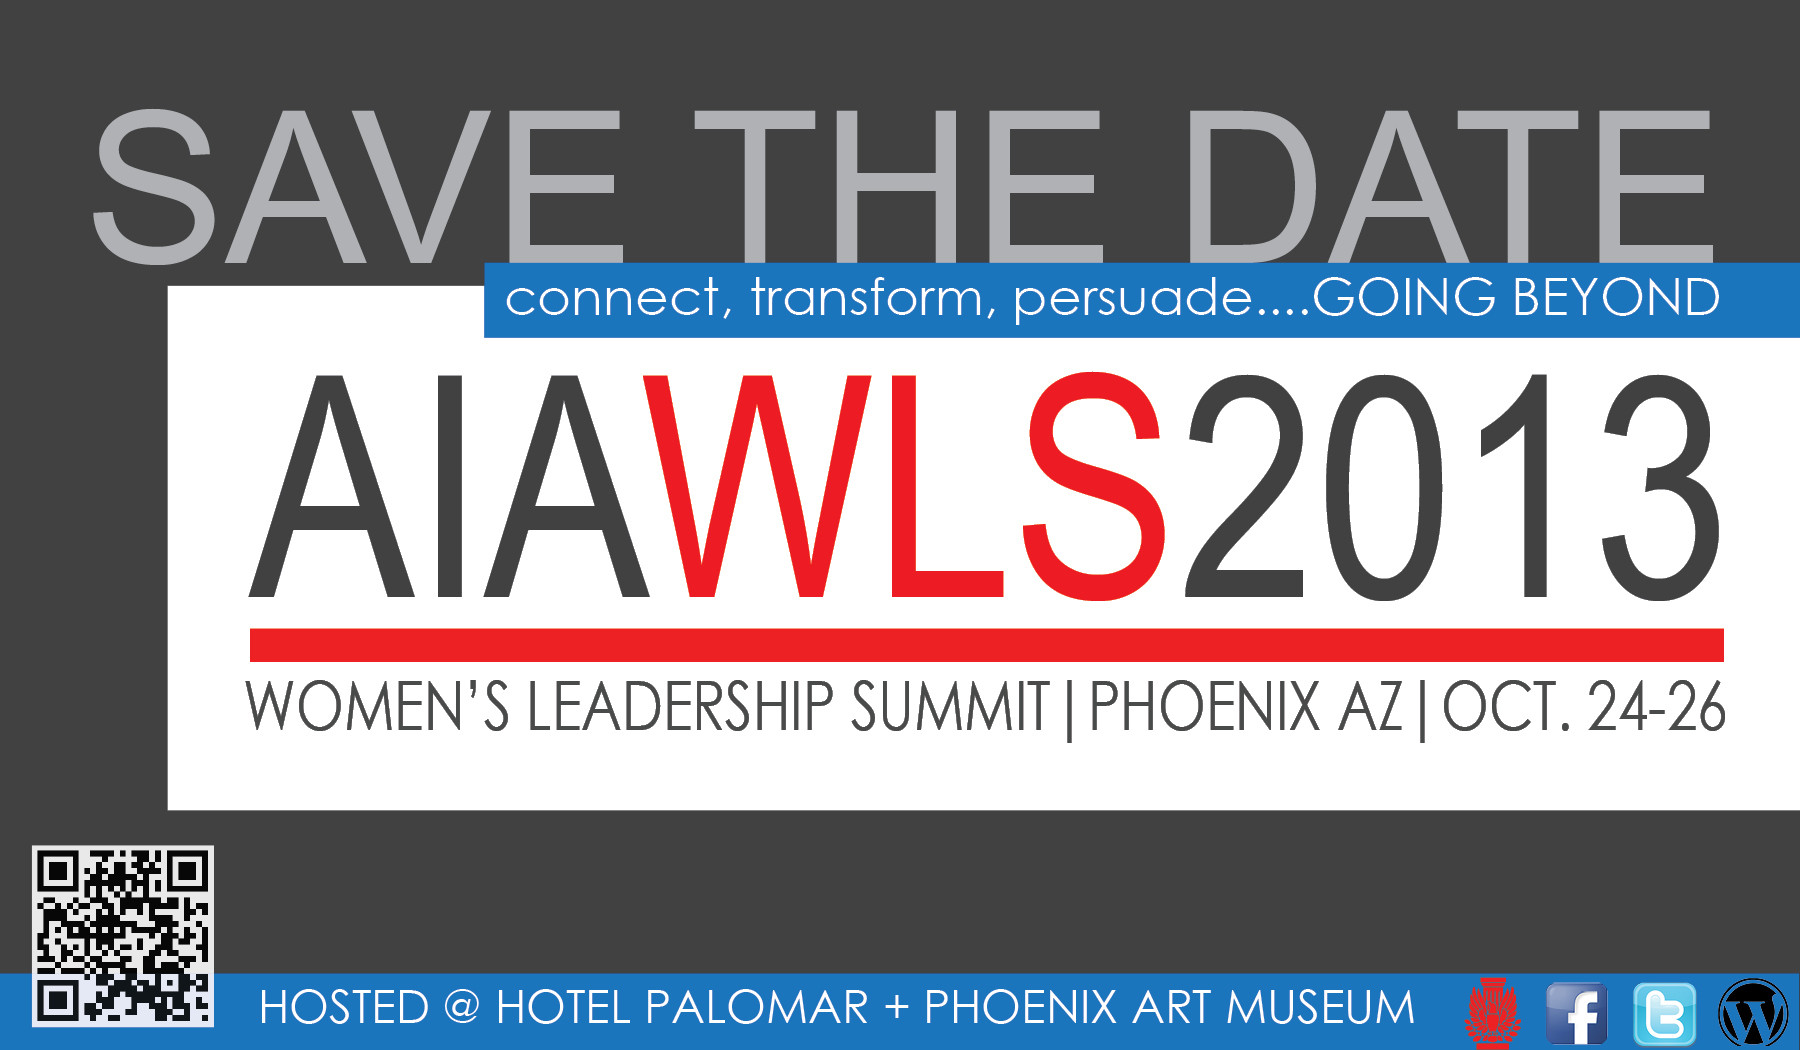 AIA Women's Leadership Summit 2013, Courtesy of AIA